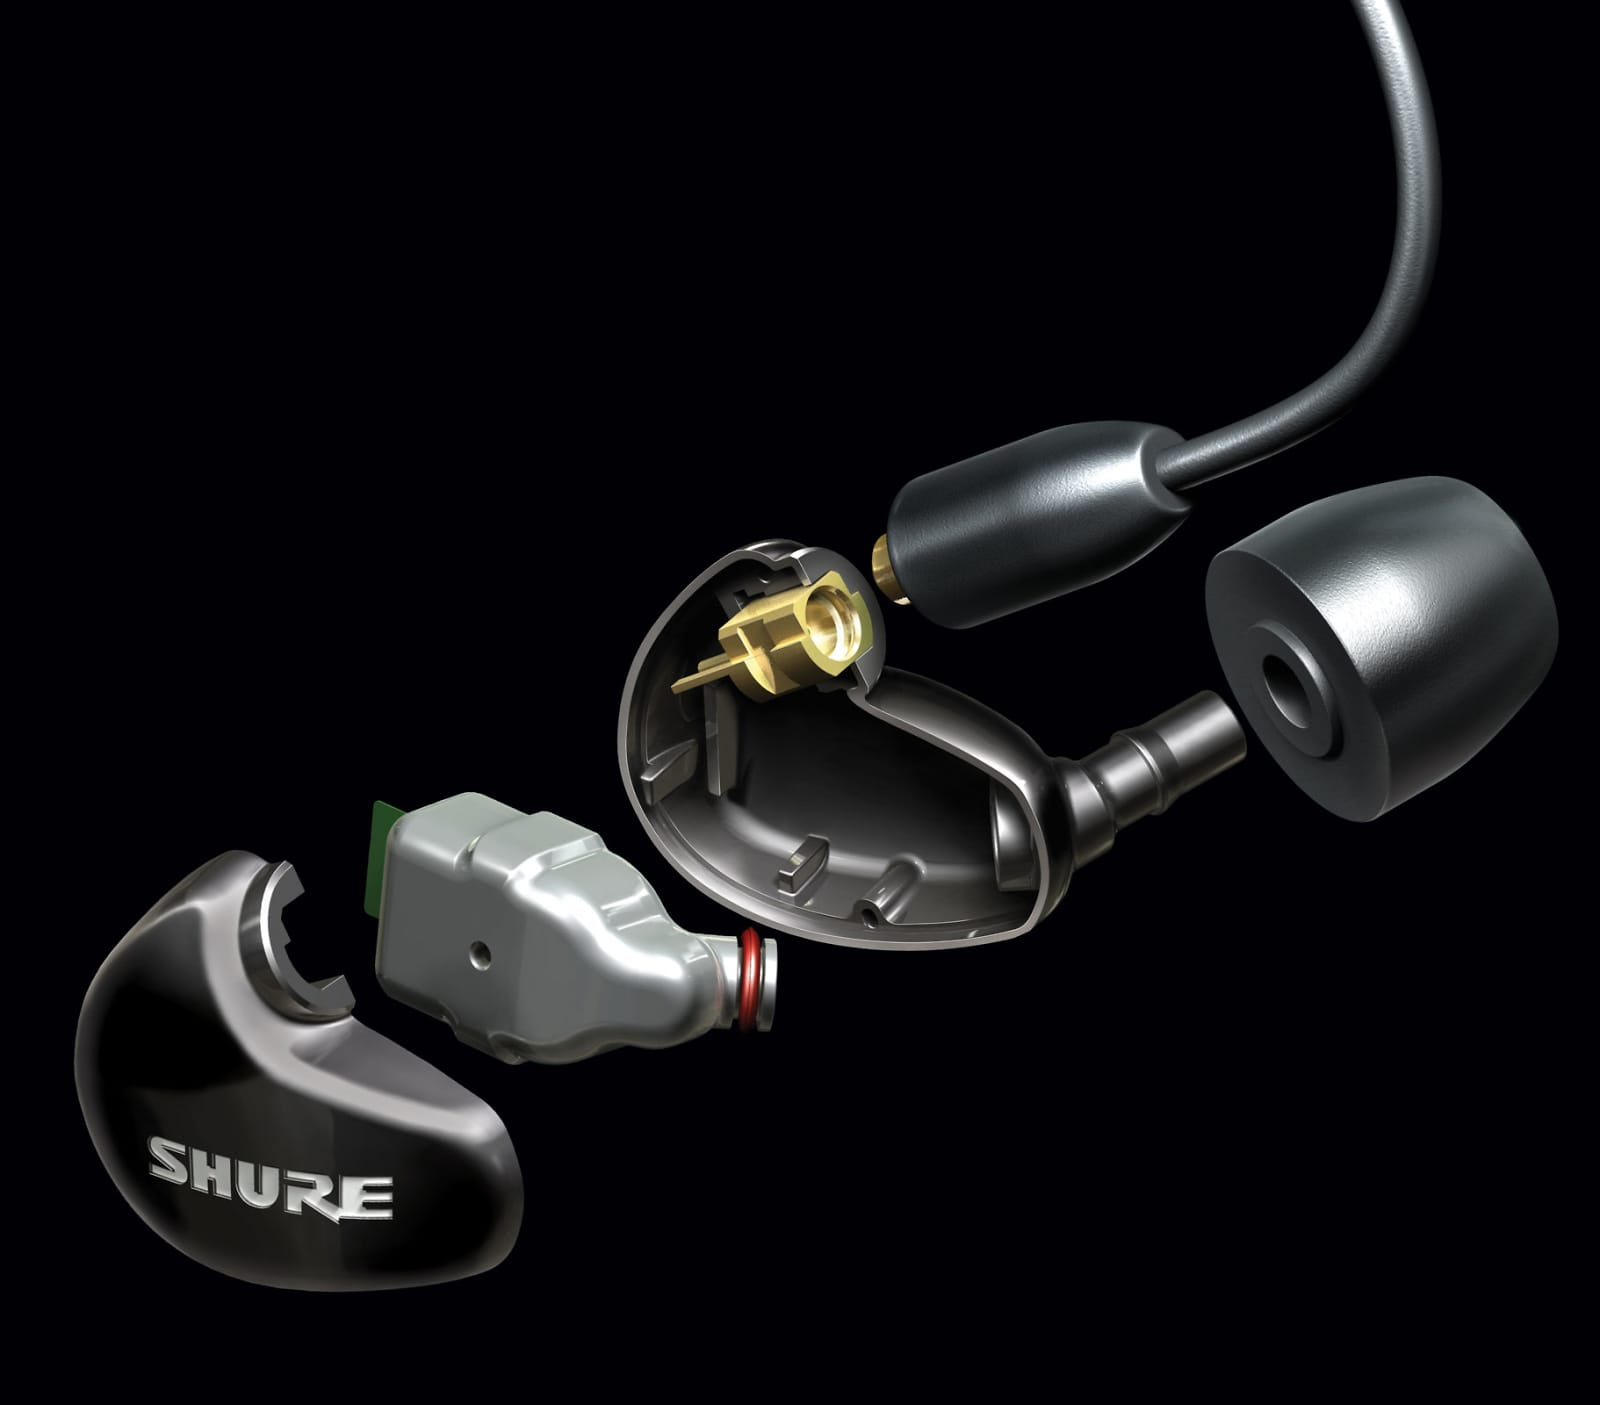 Shure SE315-CL Sound Isolating Earphones with High-Definition MicroDriver + Tuned BassPort